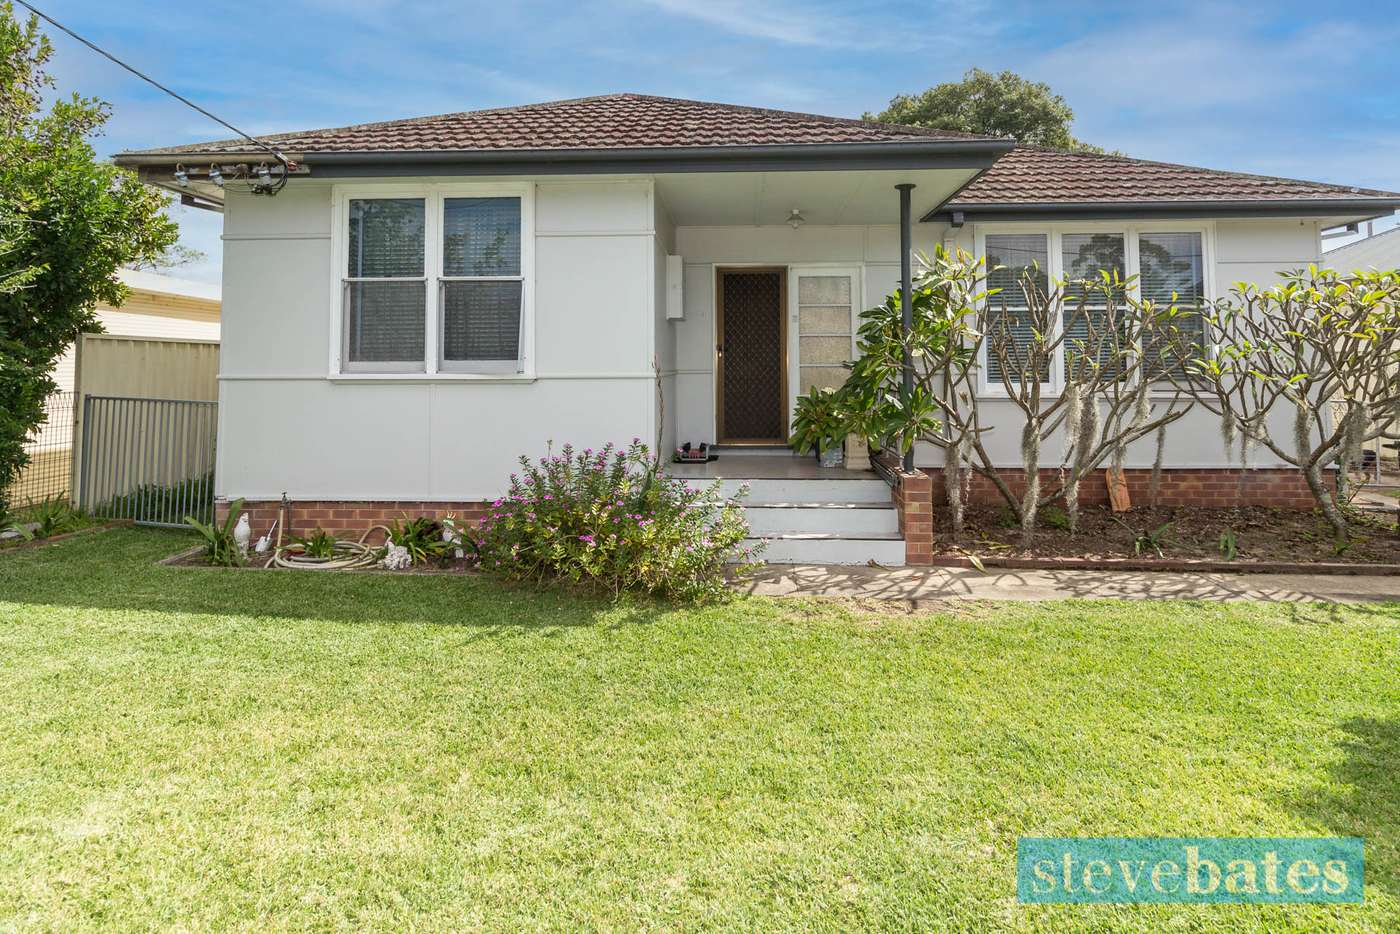 Main view of Homely house listing, 38 Charles Street, Raymond Terrace NSW 2324